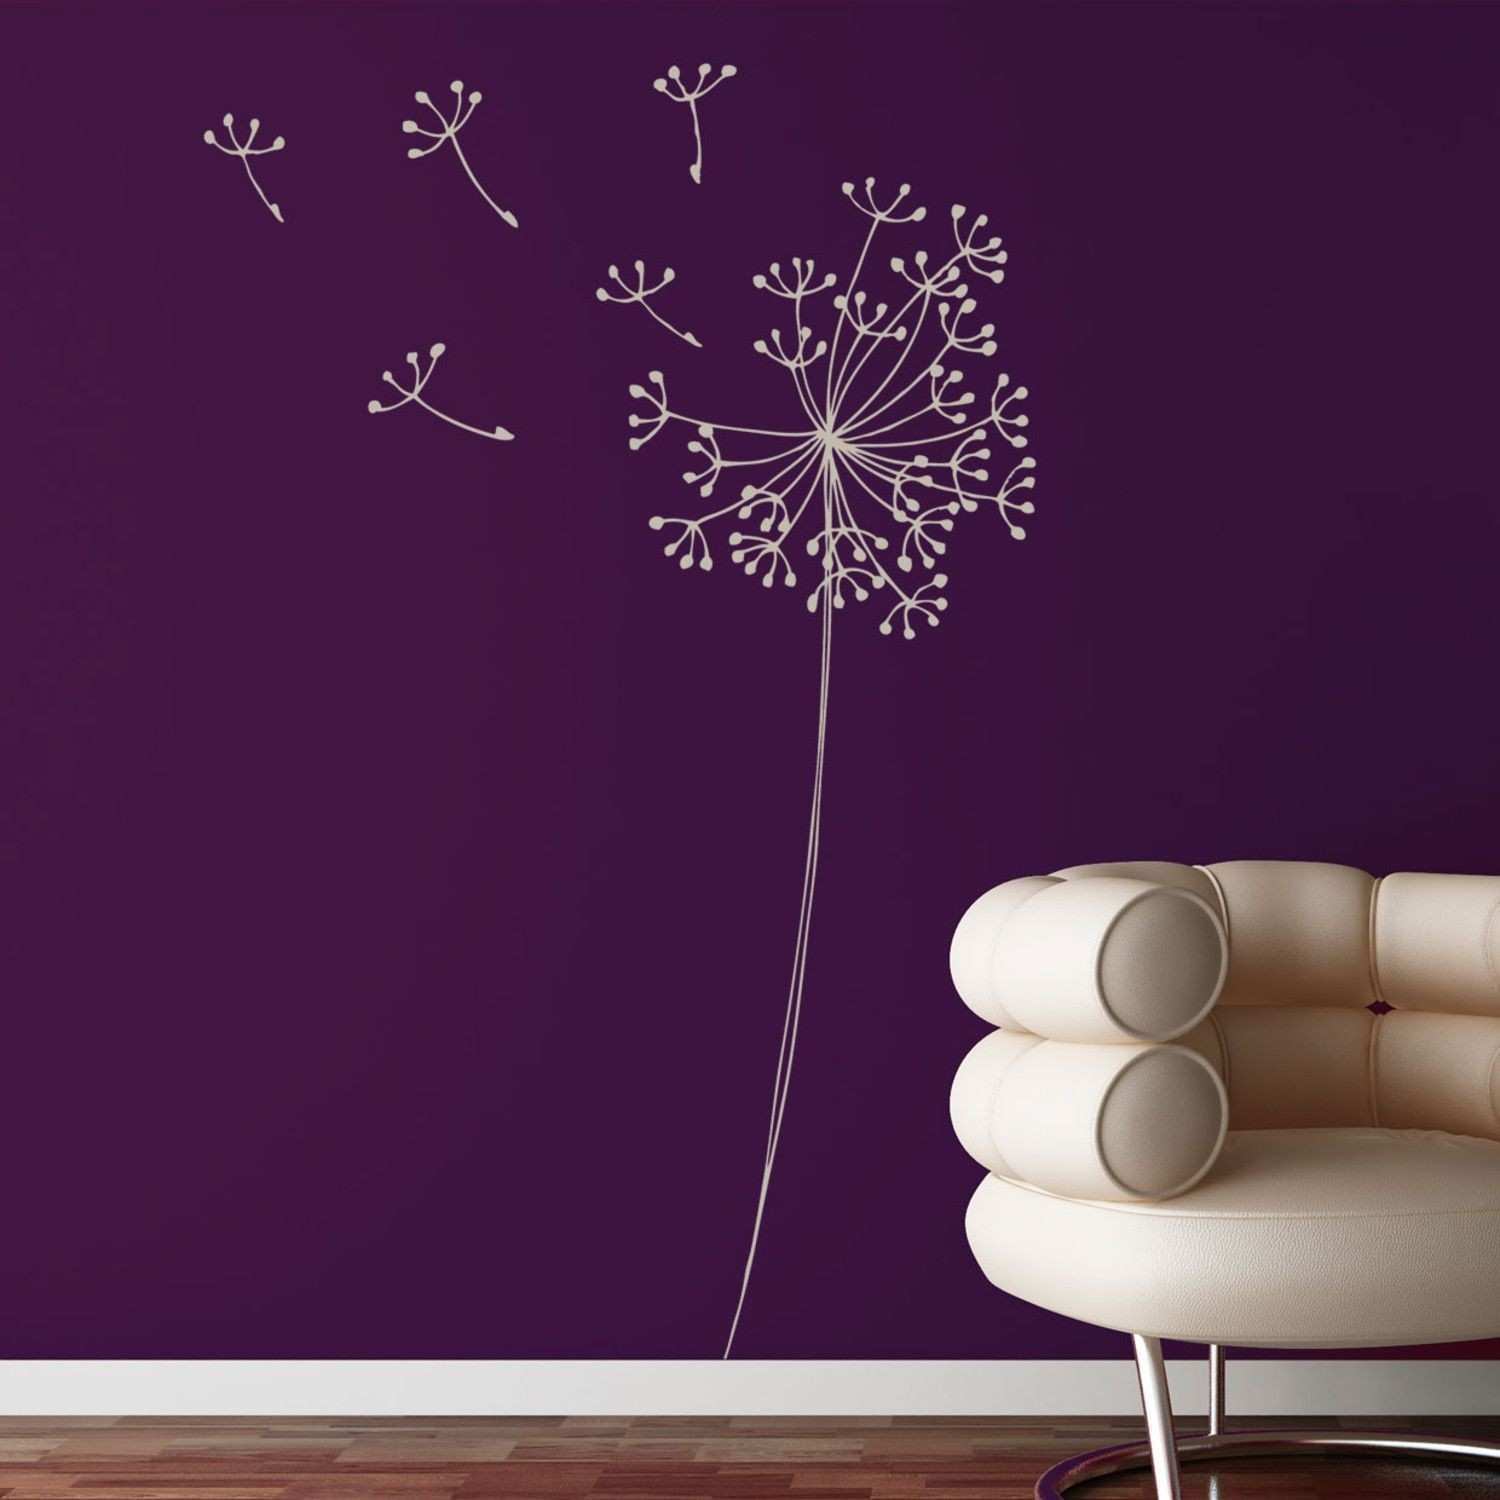 New Dandelion Wall Decal